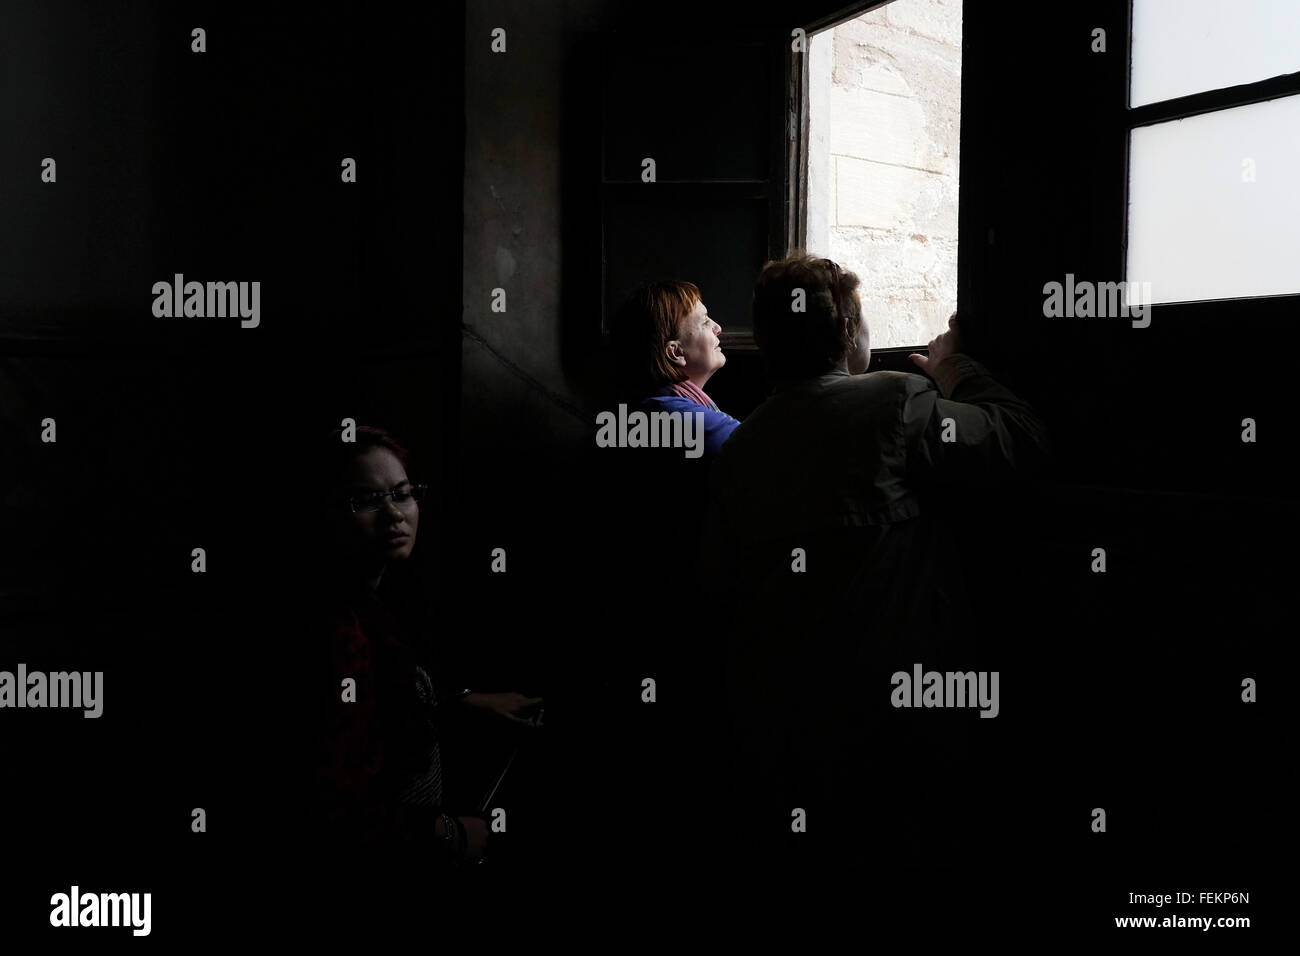 A tourist looks from a window in Hagia Sophia, Istanbul, Turkey on May 3, 2015. Stock Photo